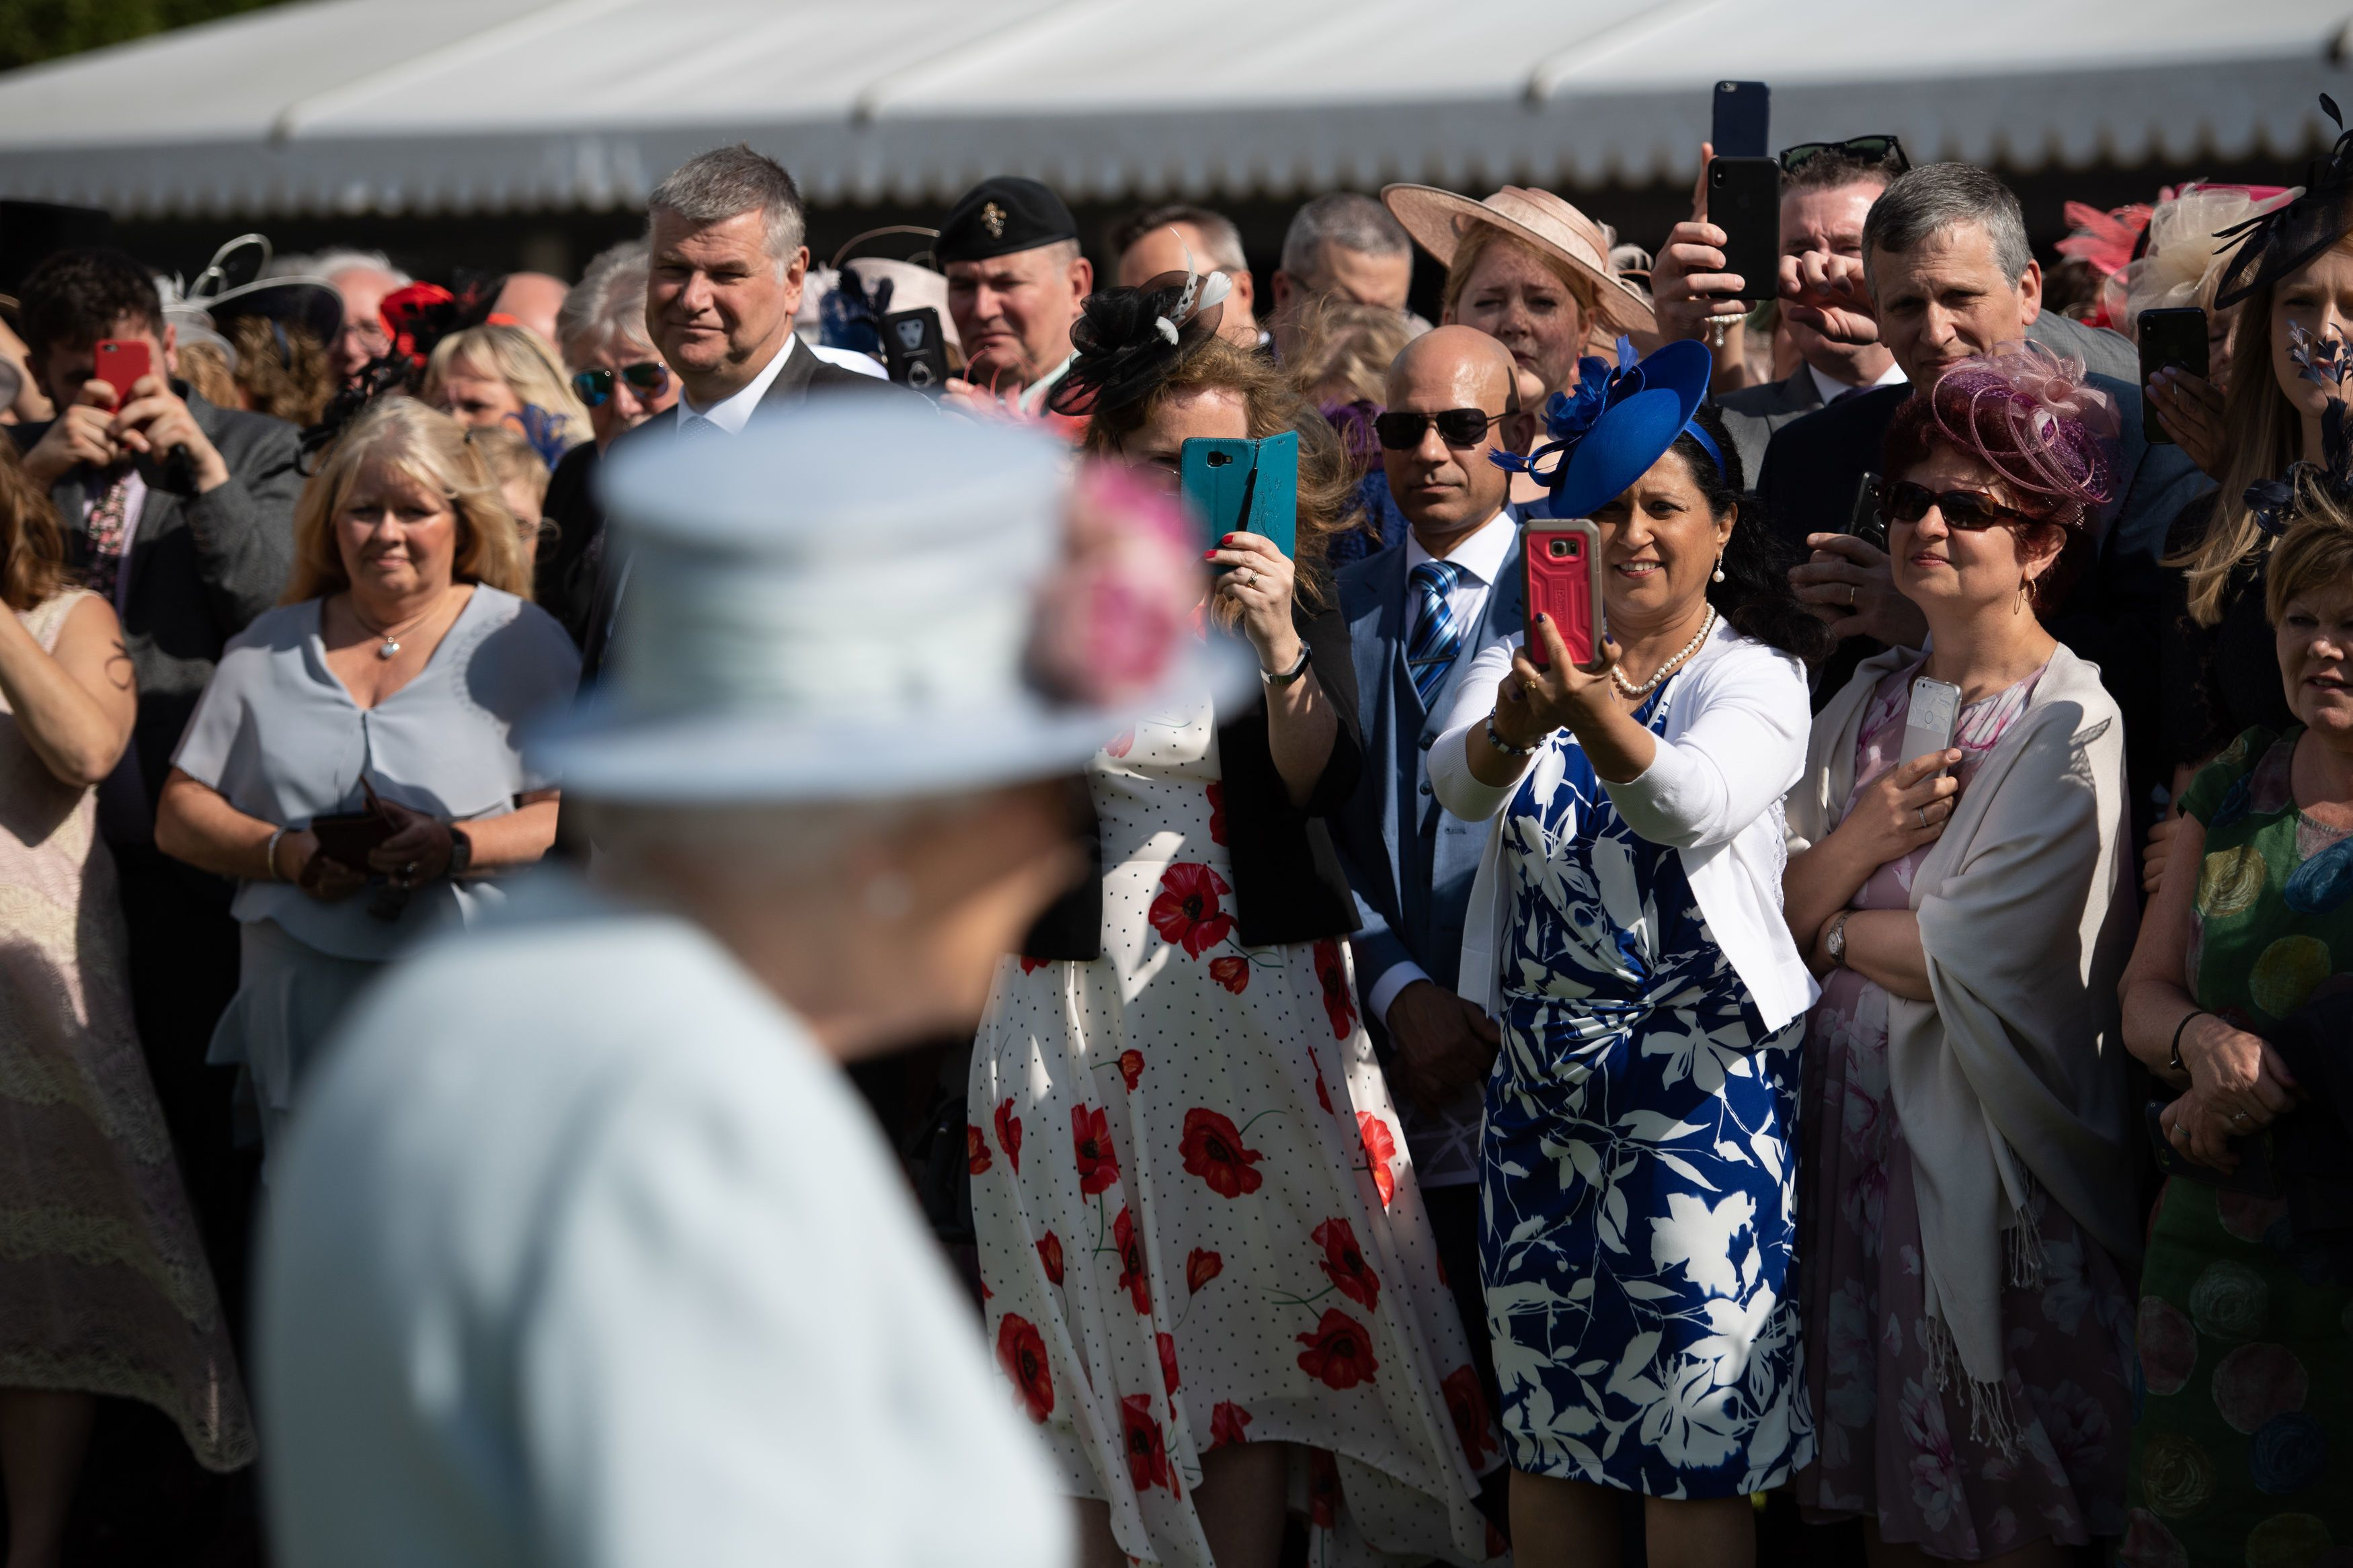 queen elizabeth garden party guests